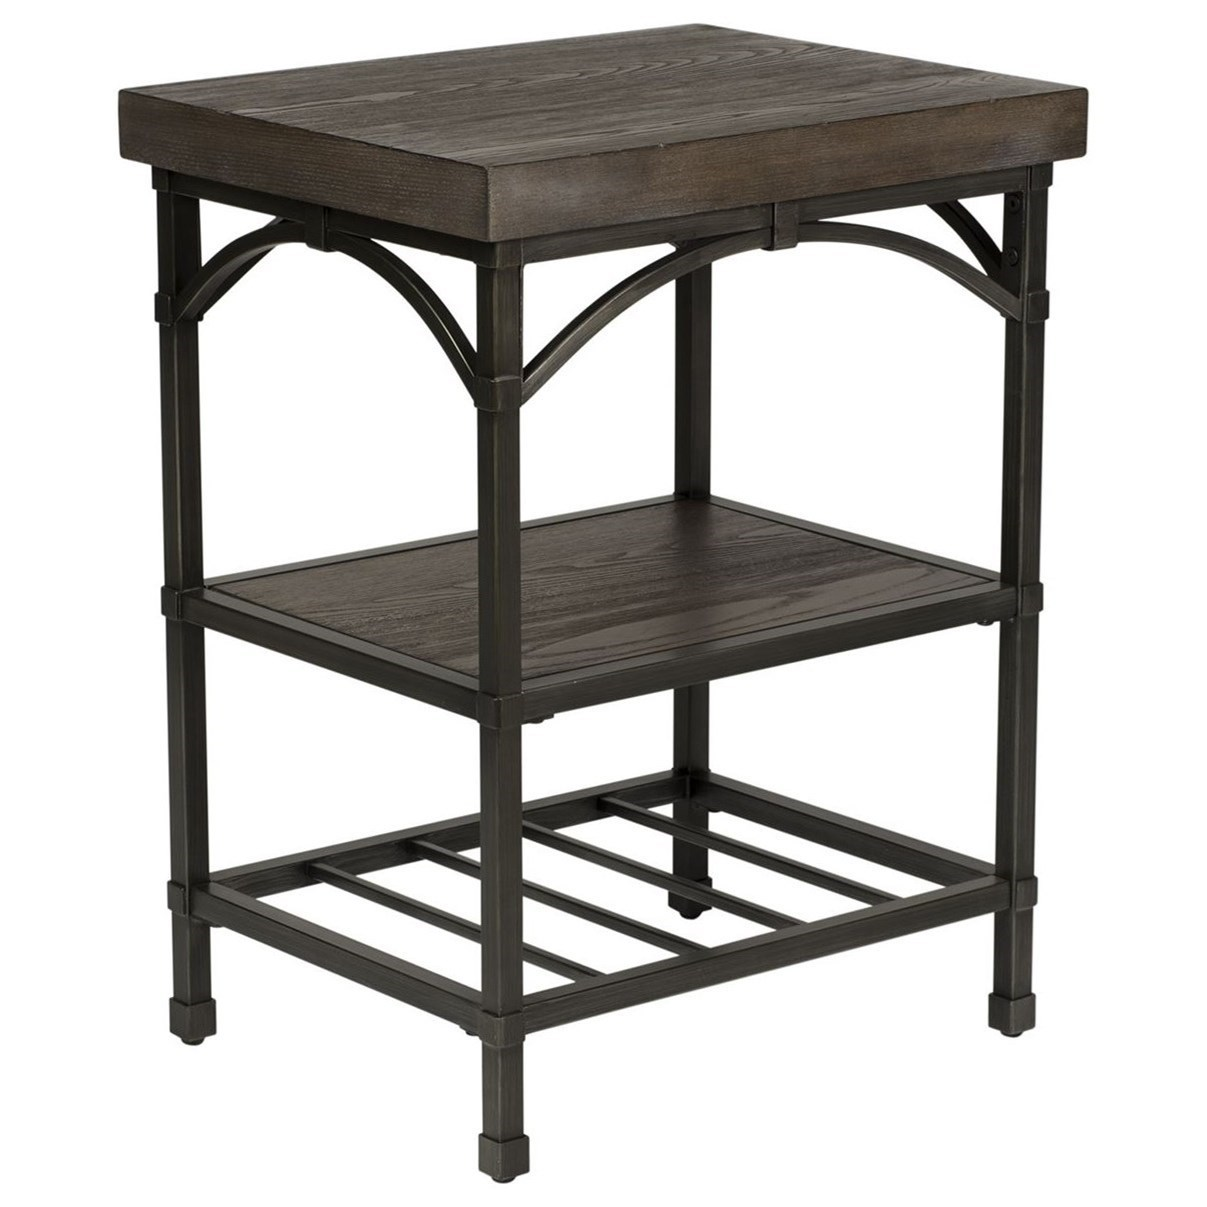 Chair Side Table with Metal Base